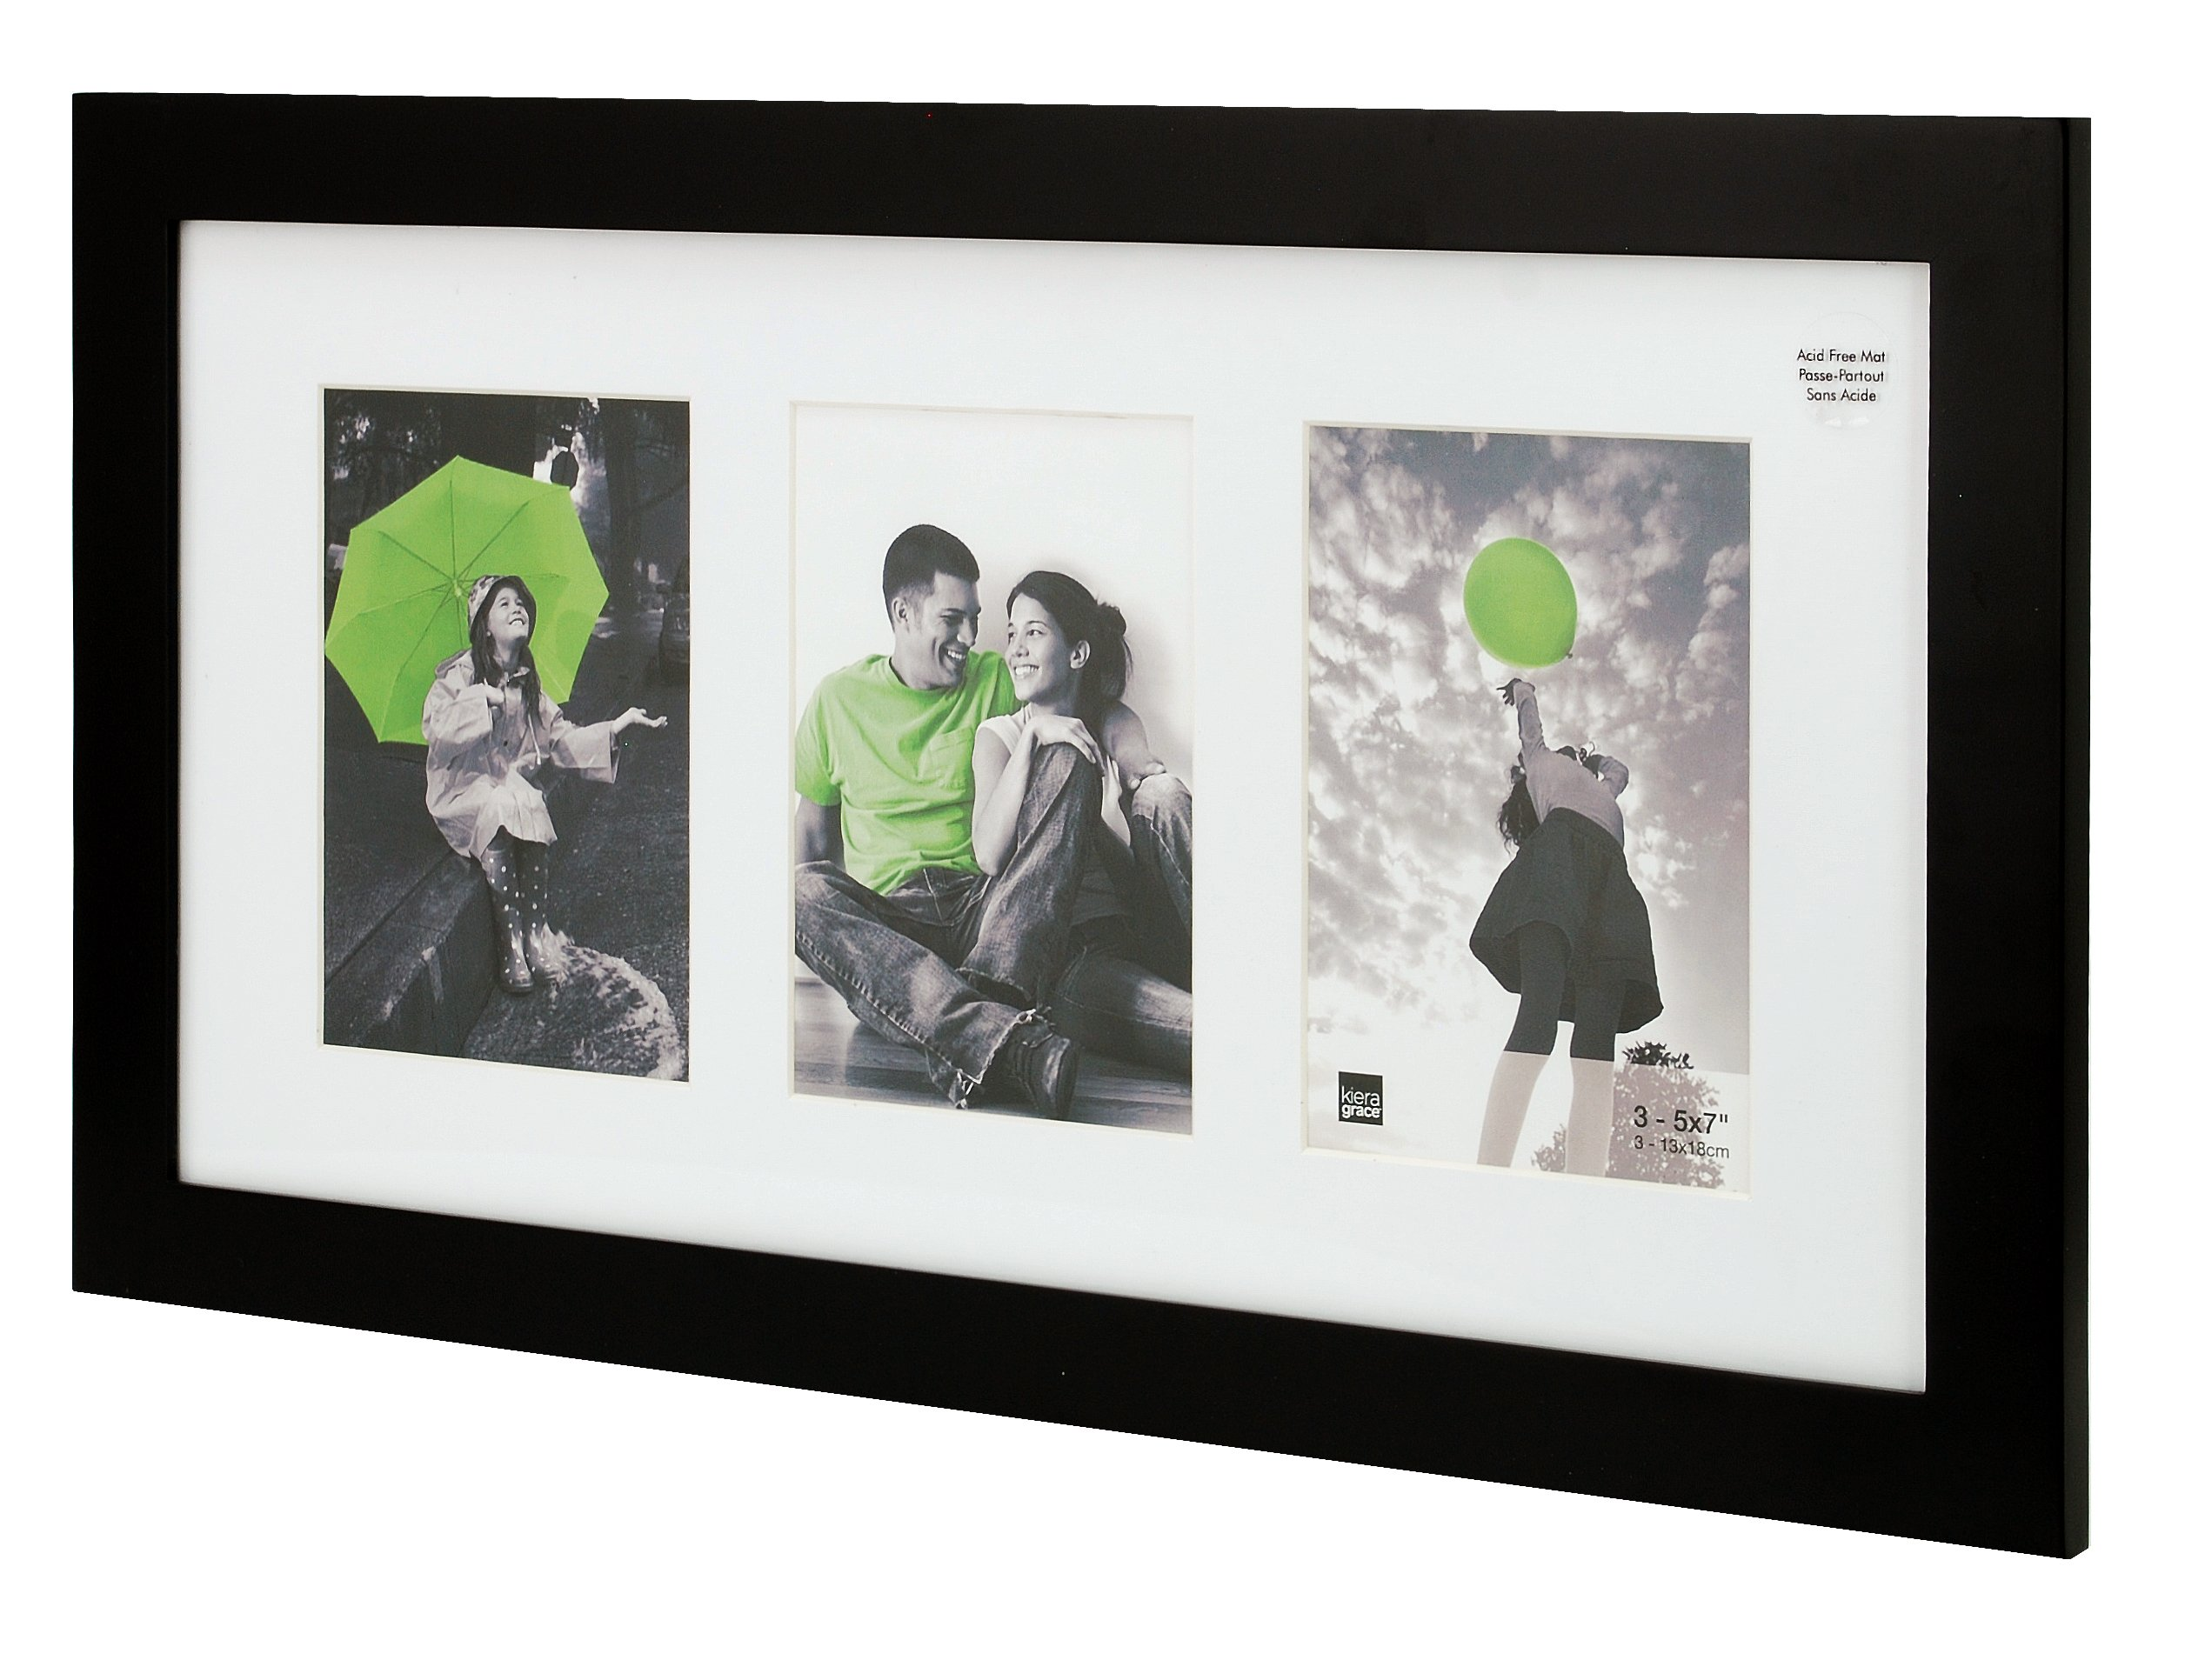 kieragrace Langford Wood Collage Picture Frame, 10 by 20-Inch Matted for 3-5 by 7-Inch Photos, Black by kieragrace (Image #2)